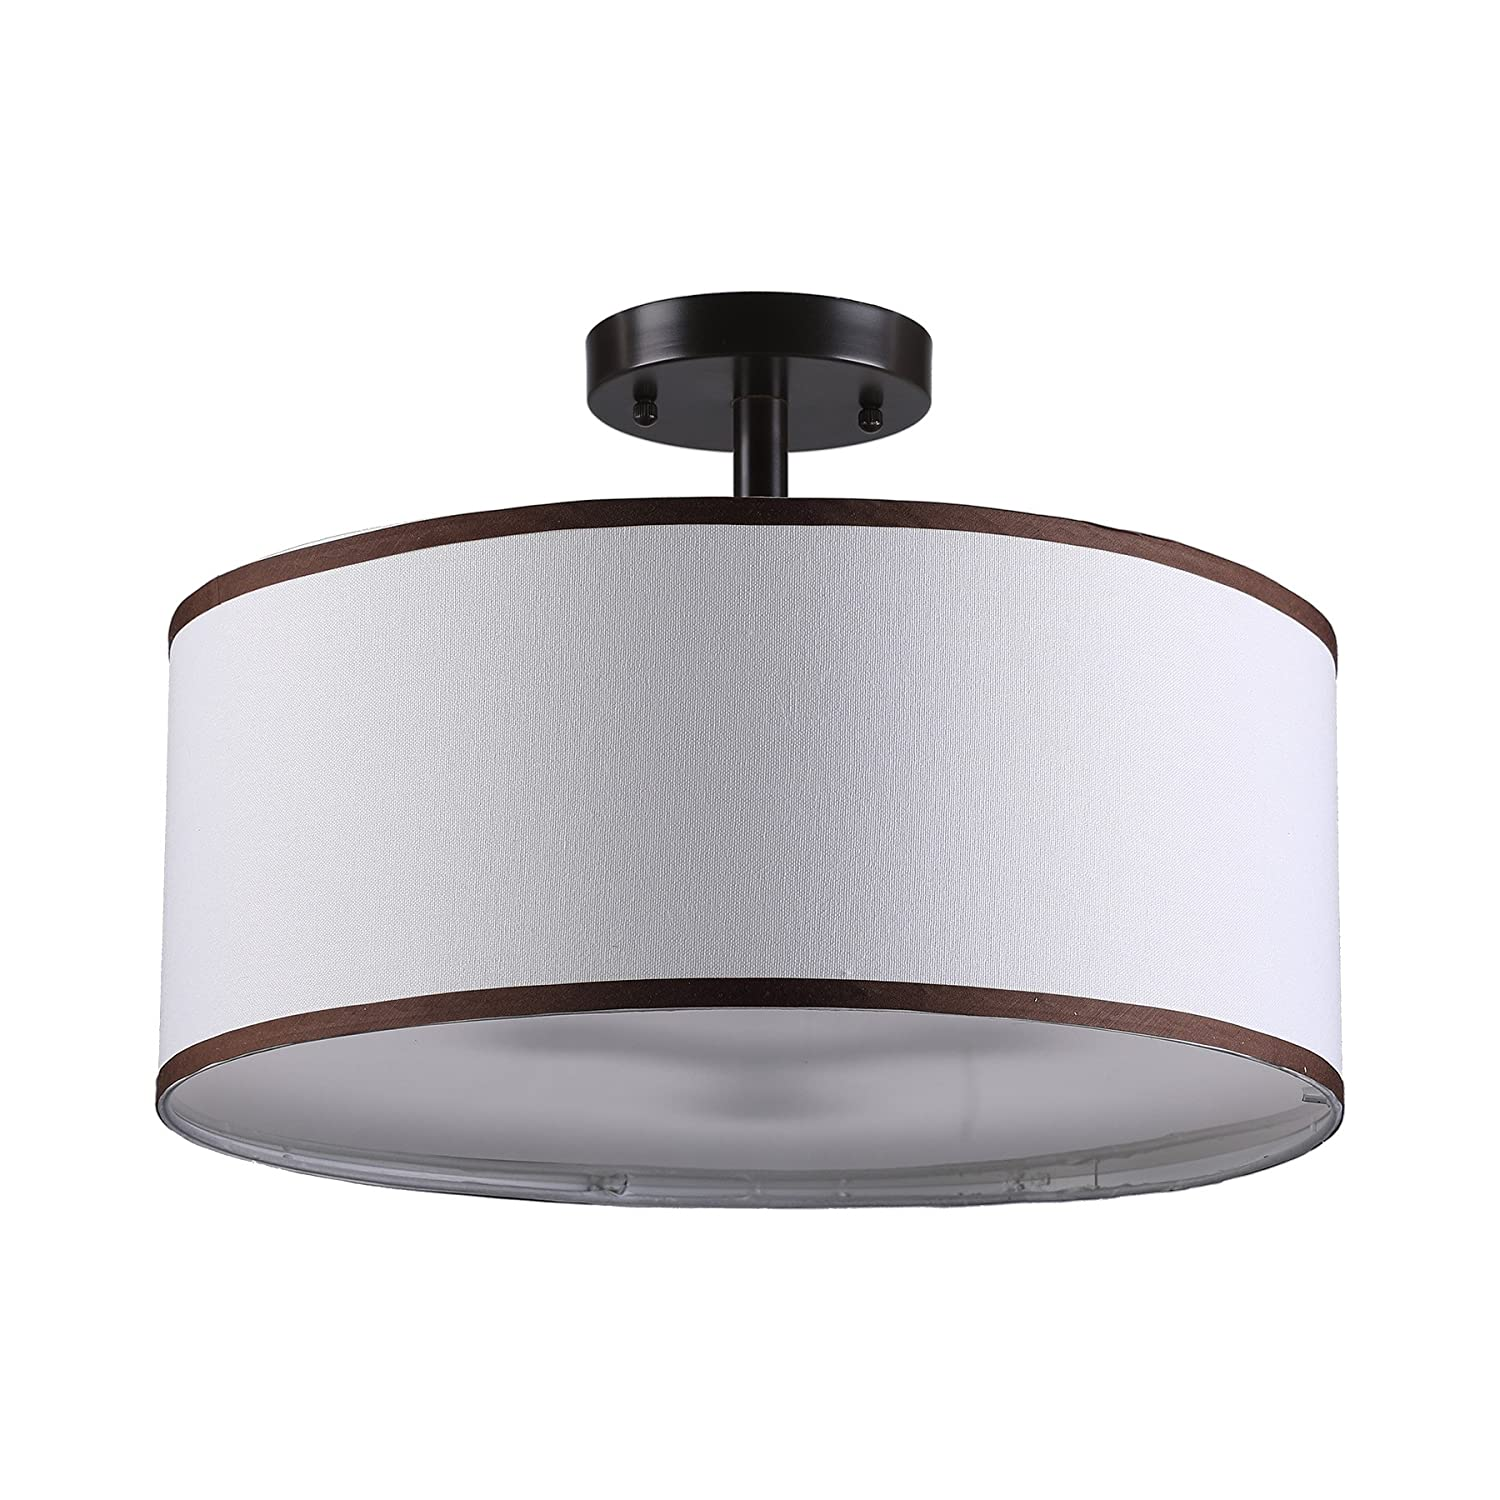 Semi-Flush Mount Contemporary Ceiling Lighting Fixture with Diffused Shade for Kitchen Bronze Finished 3 Light Drum Chandelier Dining Room Table Hallway CO-Z Drum Light